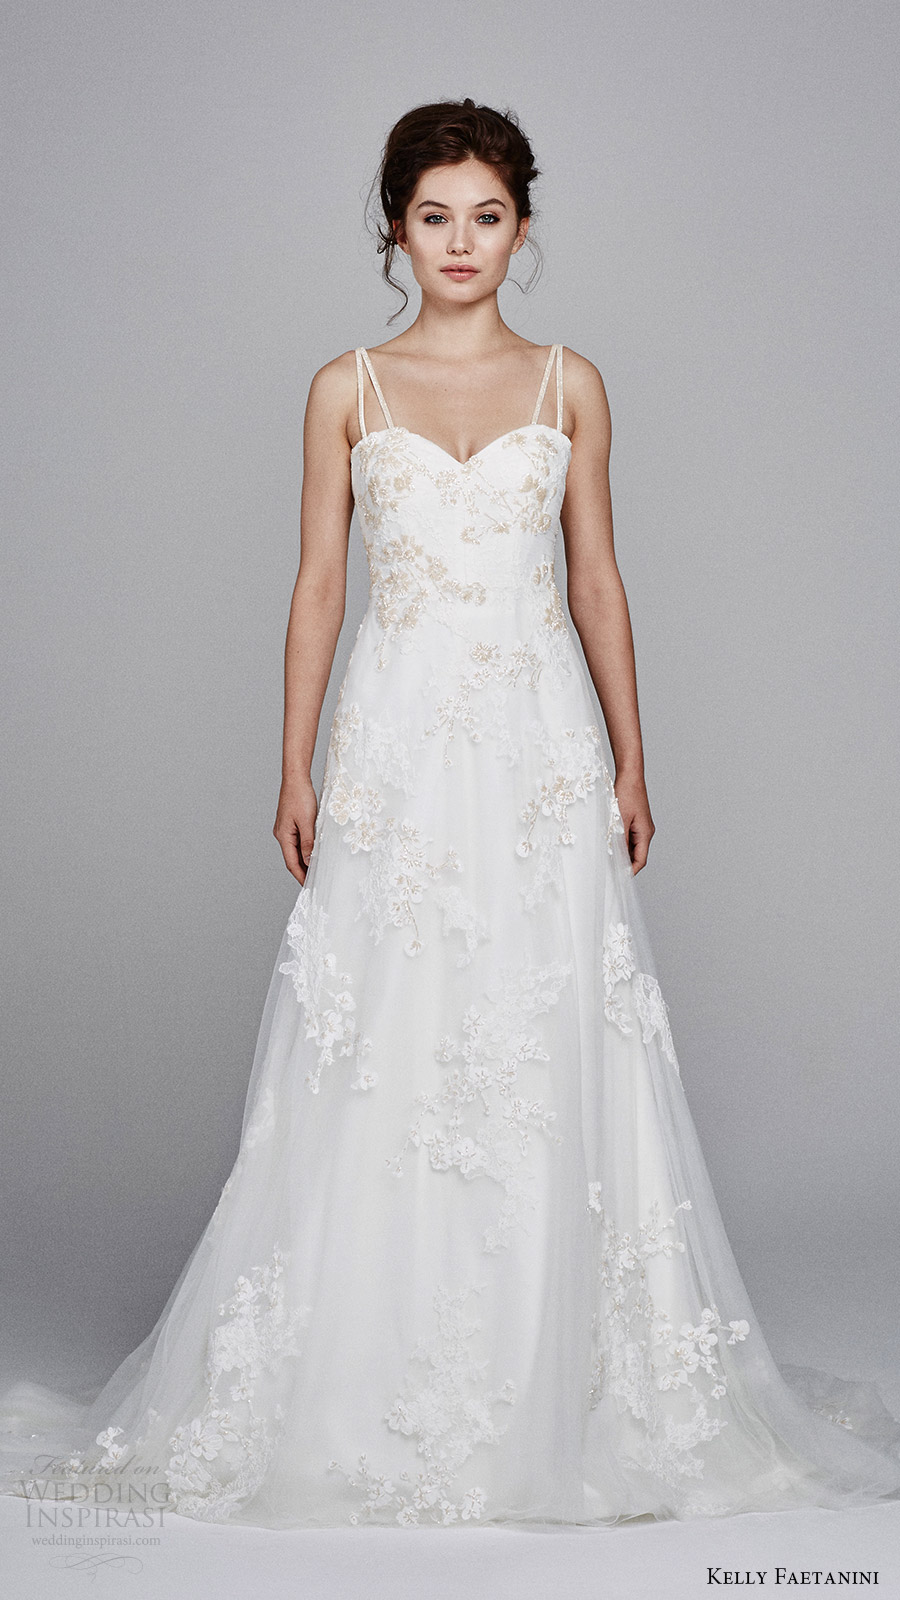 kelly faetanini bridal fall 2017 sleeveless double straps sweetheart alencon lace aline wedding dress (fleur) mv